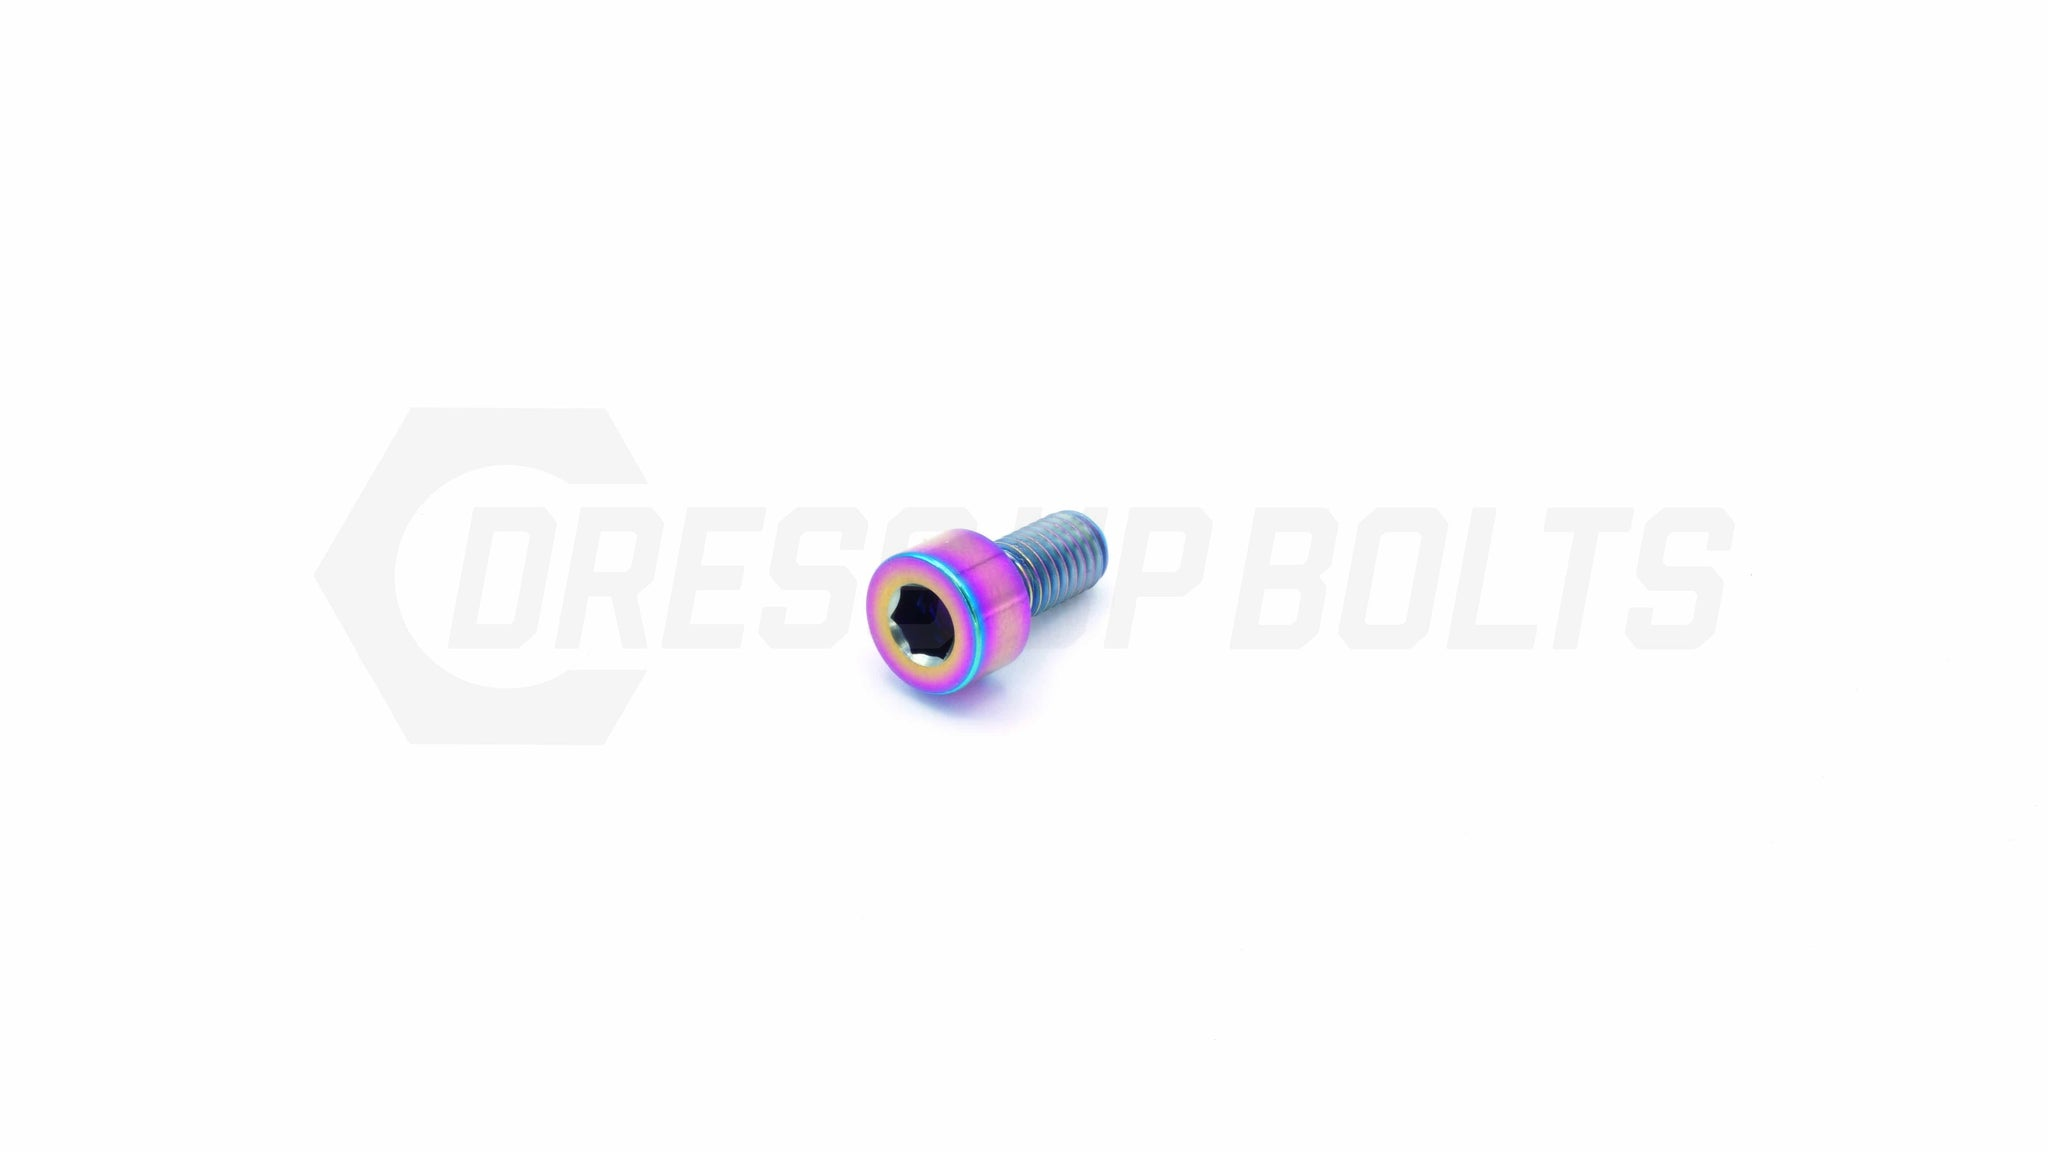 M6 x 1.00 x 10mm Titanium Socket Cap Bolt by Dress Up Bolts - DressUpBolts.com